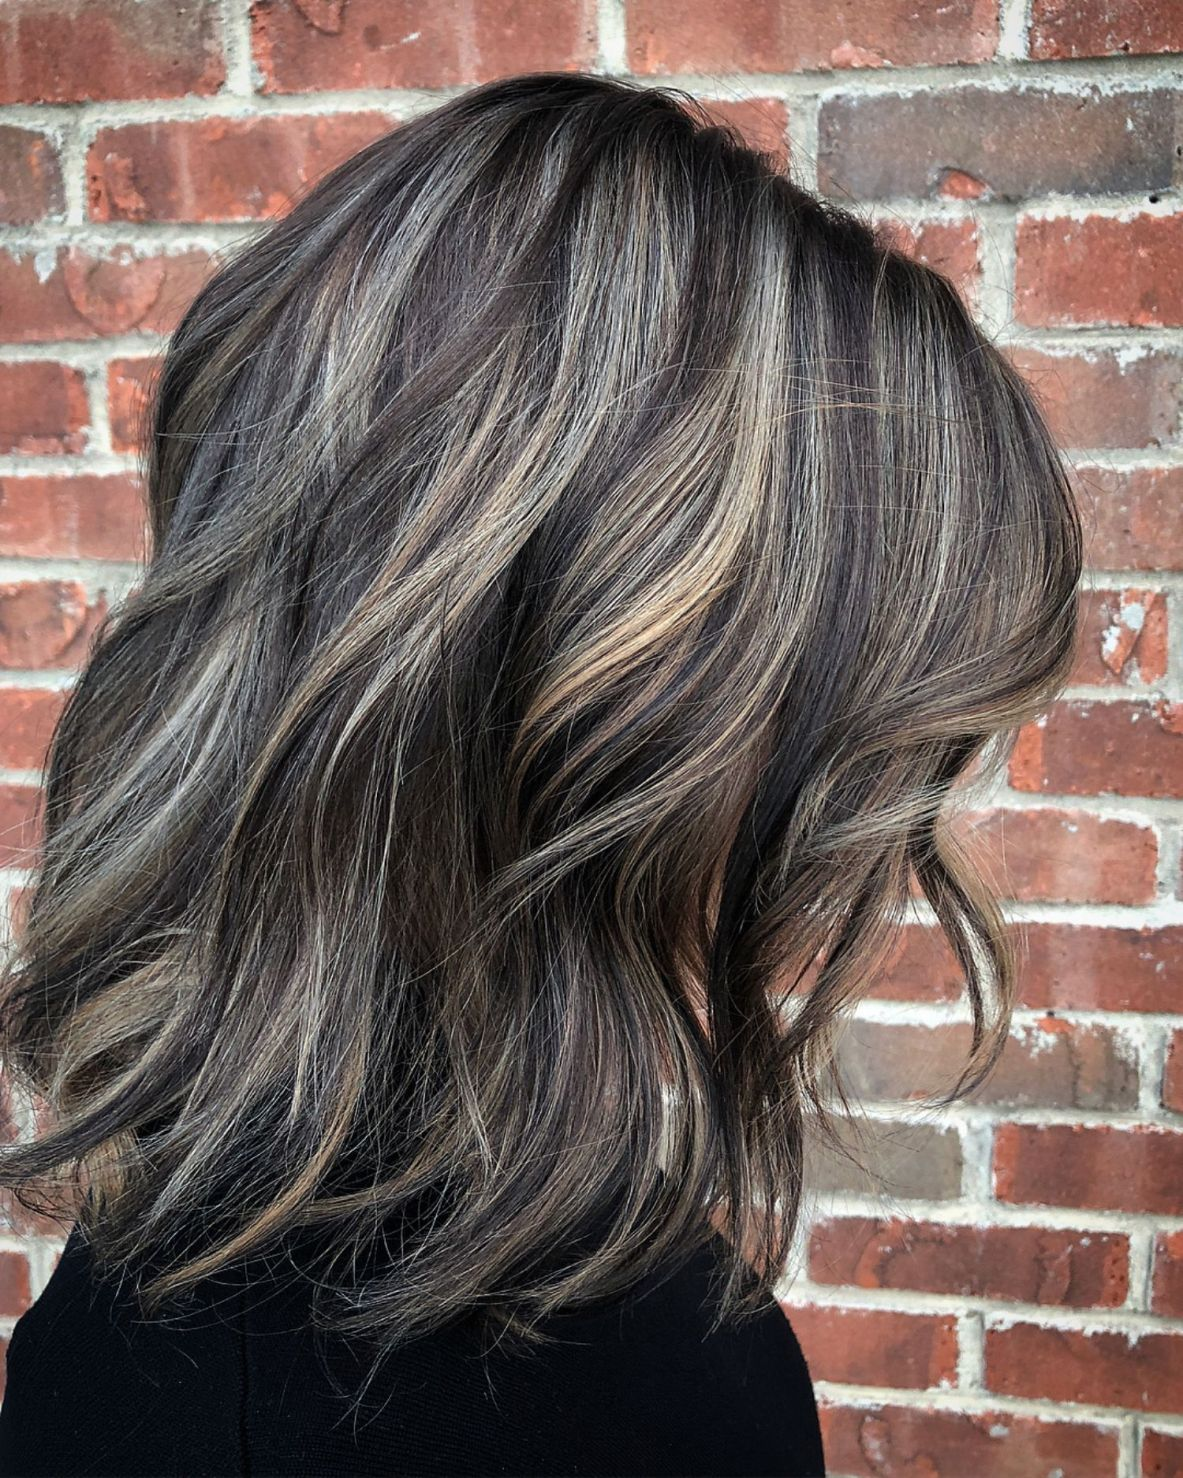 60 Shades Of Grey Silver And White Highlights For Eternal Youth Gray Hair Highlights Covering Gray Hair Brown Hair With Silver Highlights